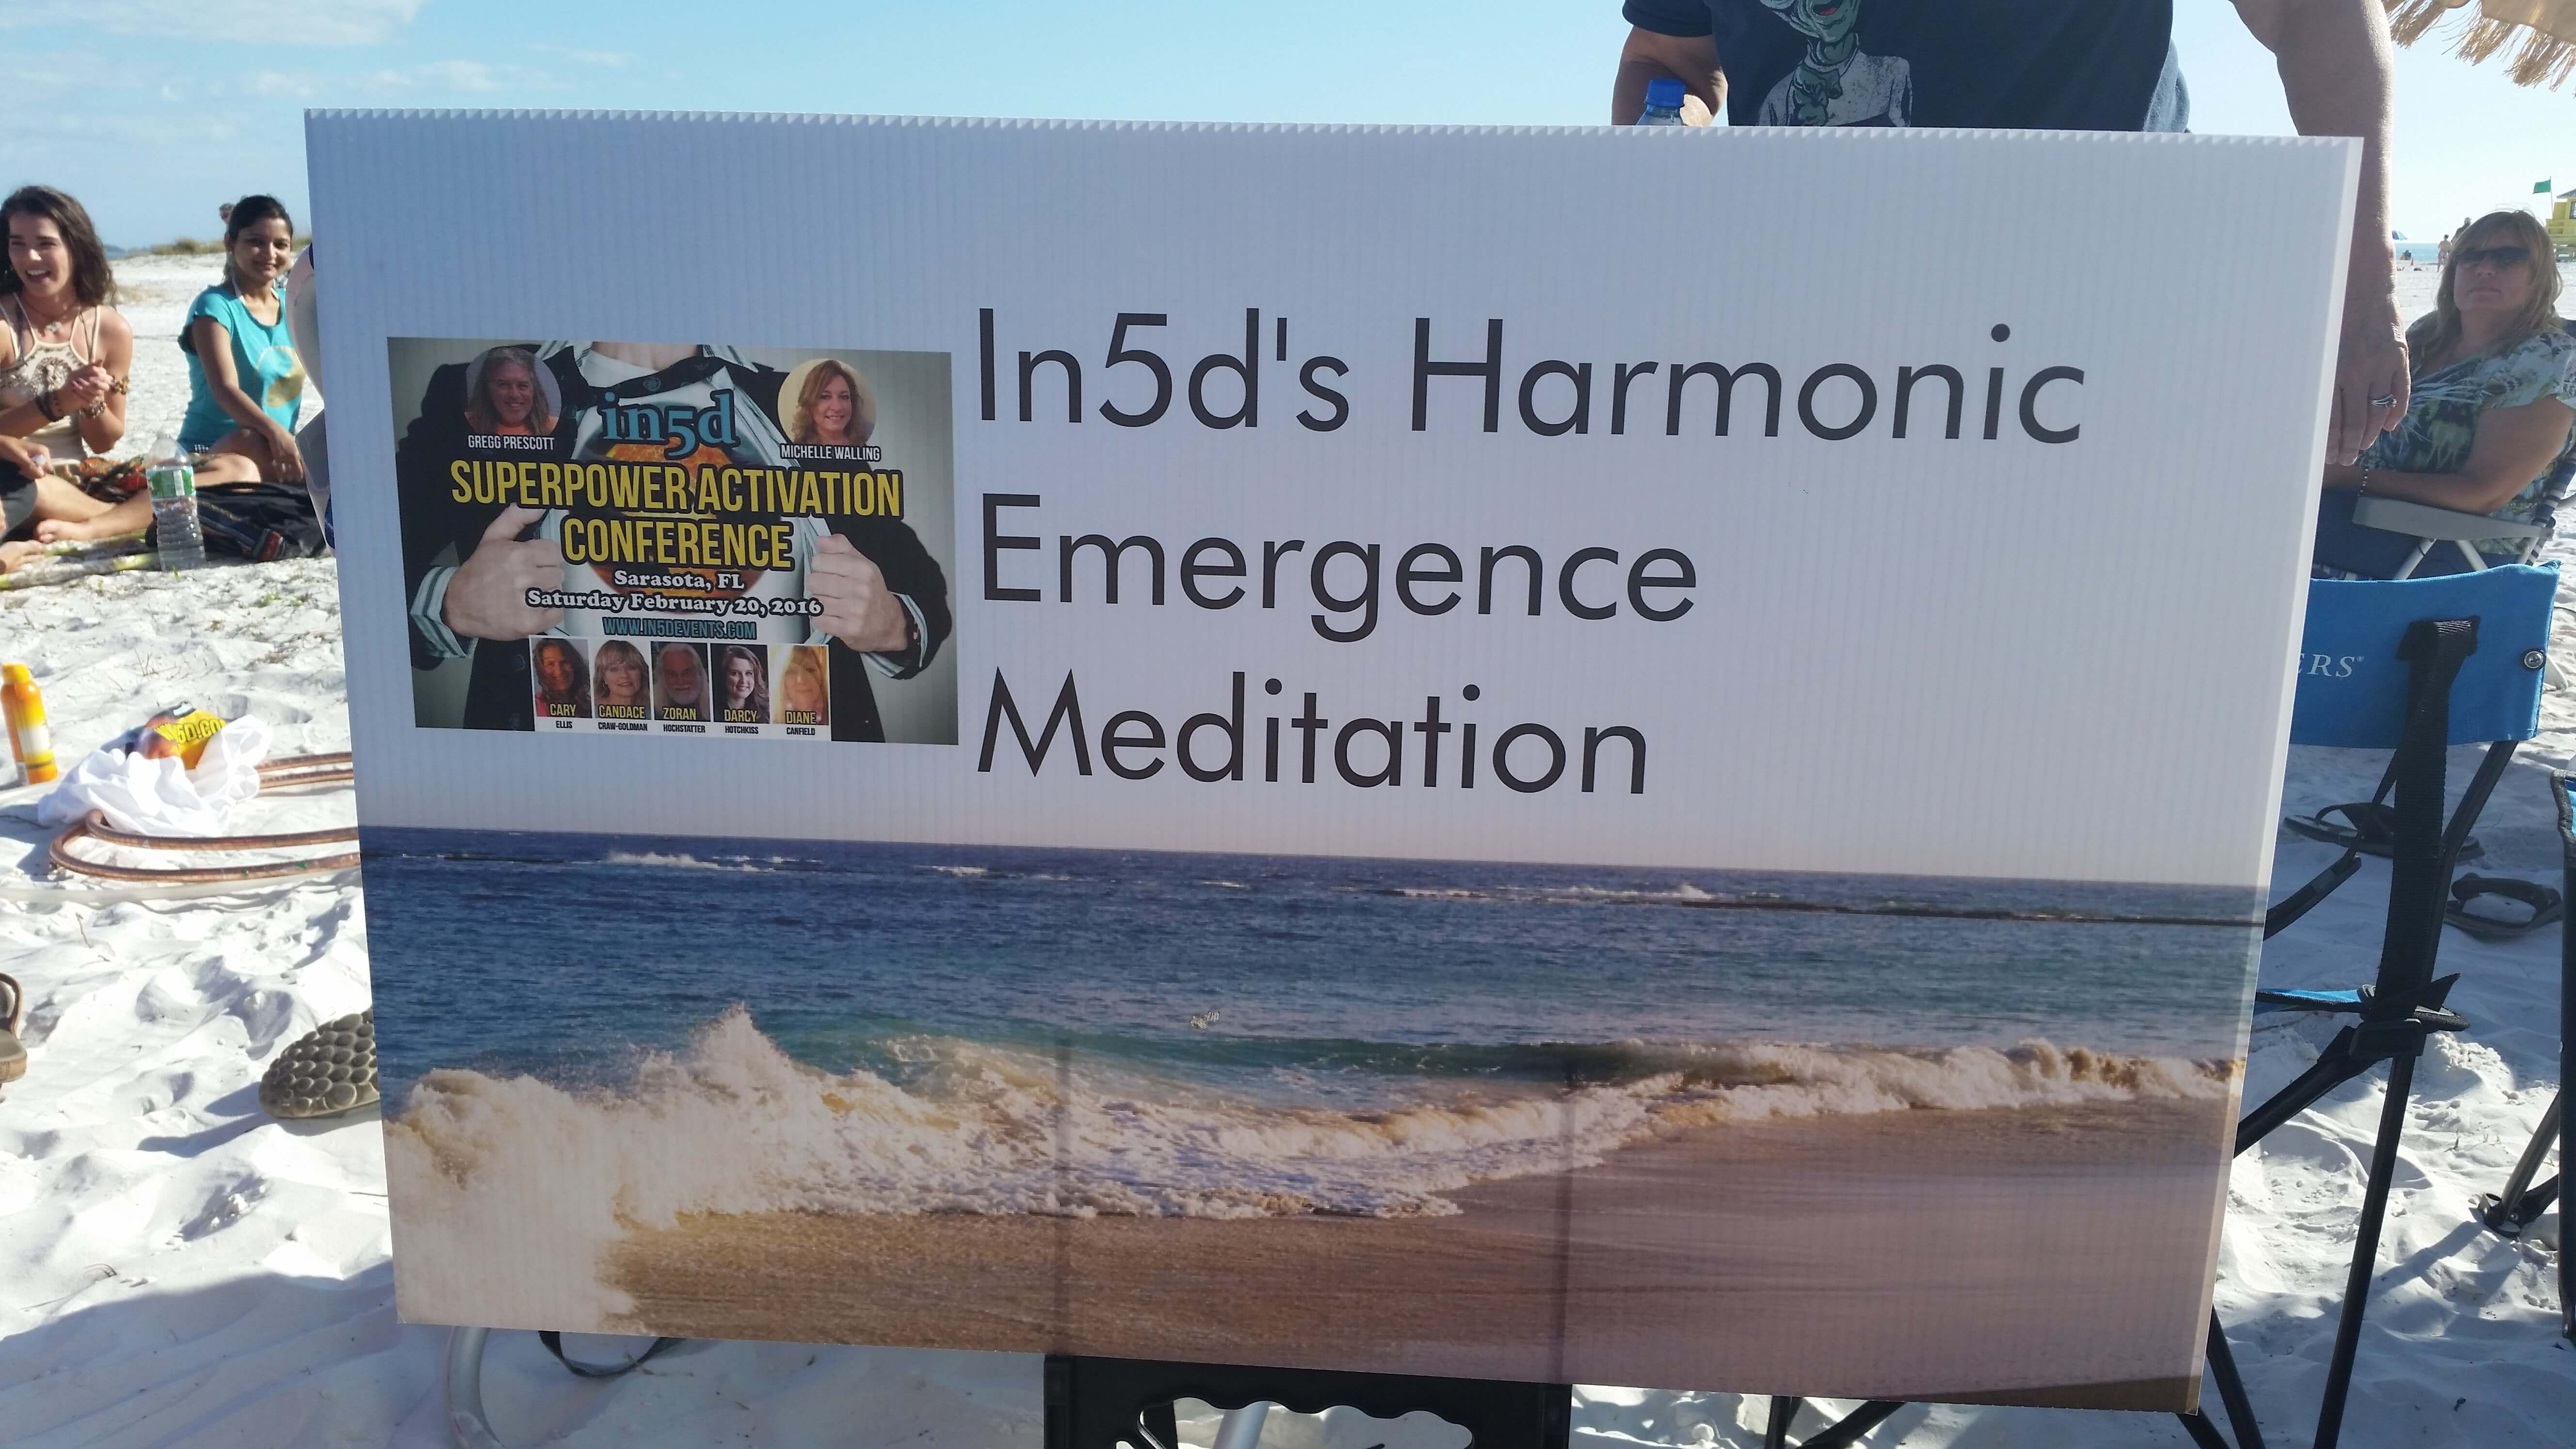 Harmonic Emergence Beach Meditation - Siesta Key Beach, Florida